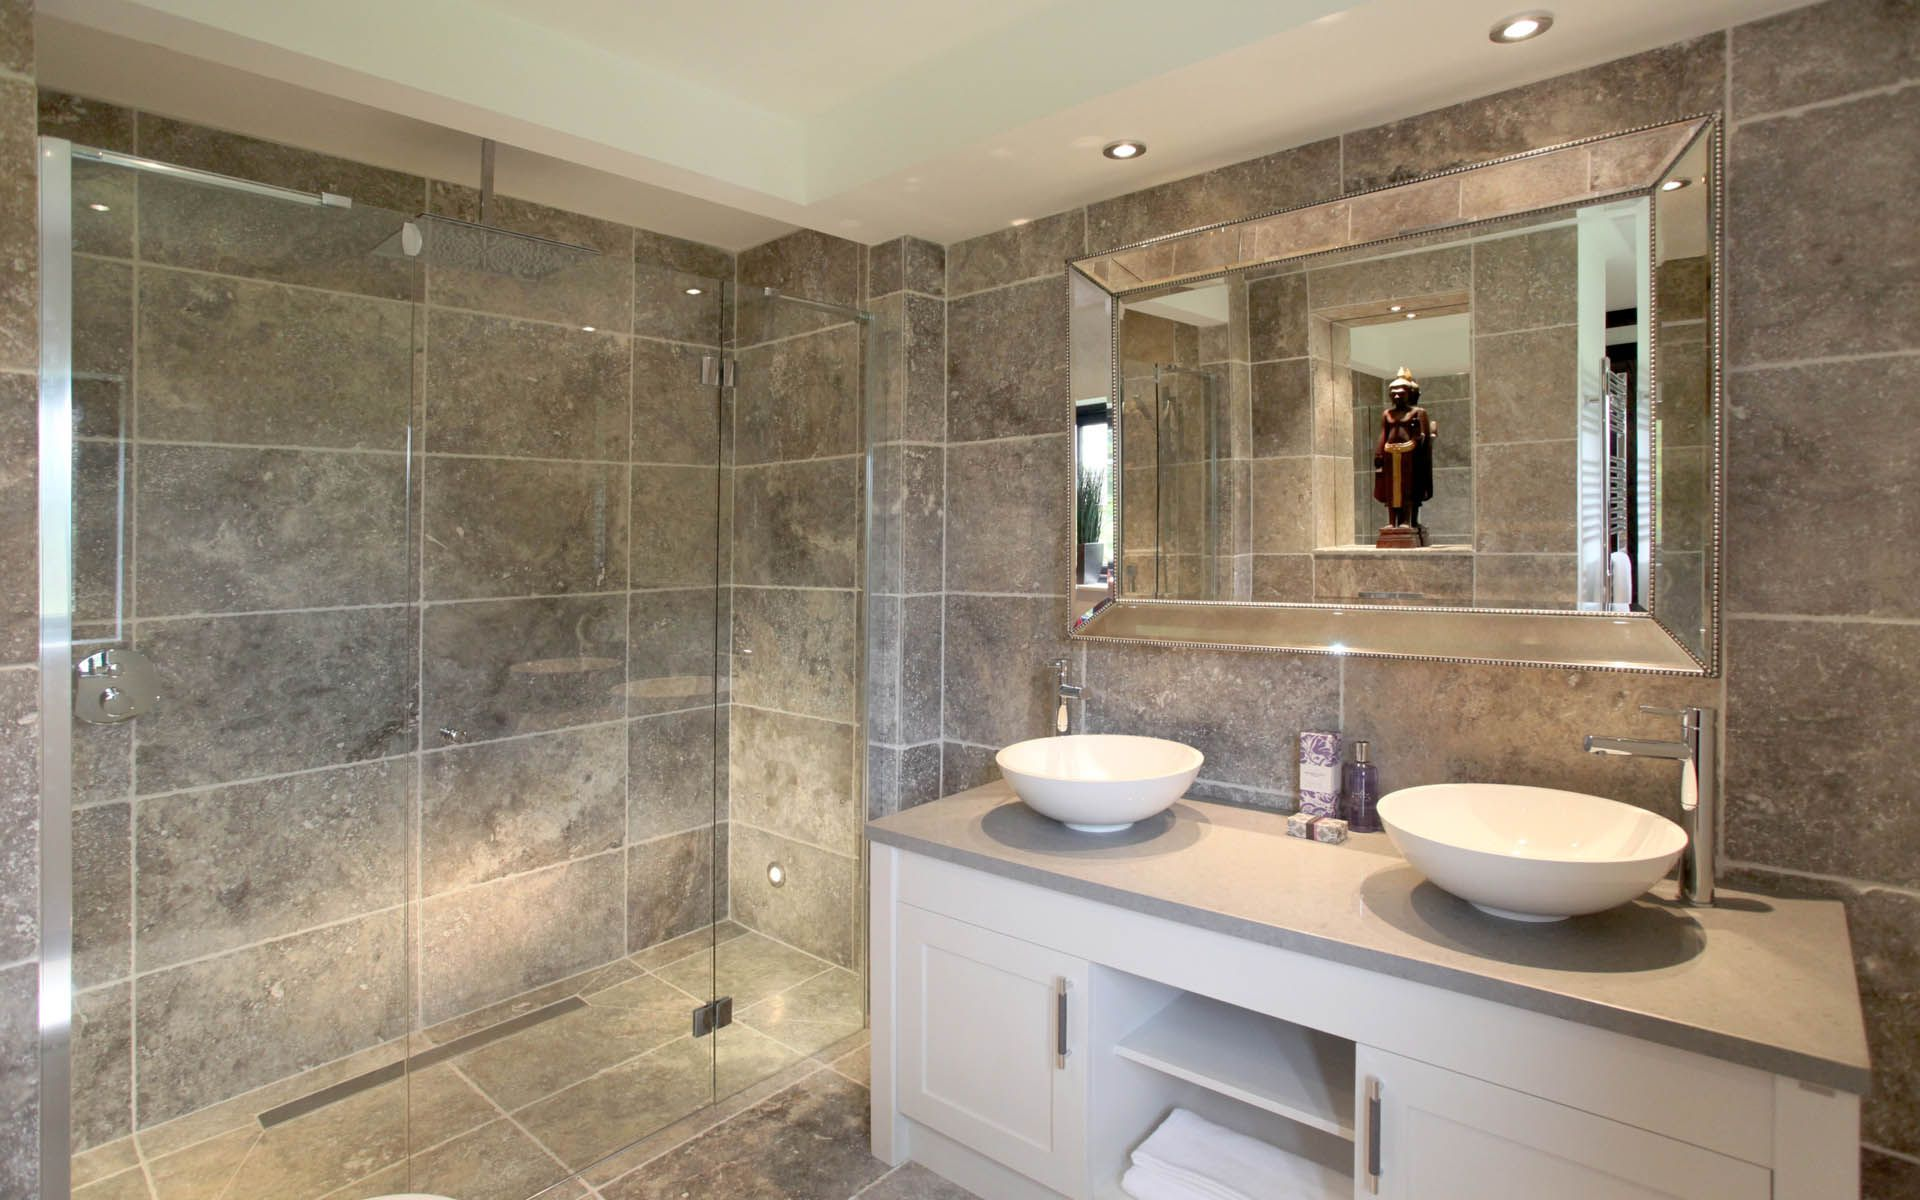 En Suite Shower Room Design Ideas Part - 15: Photo Of Beige Brown Bathroom Ensuite Ensuite Bathroom With Cabinets Double  Sink Lighting Mirror Shower Sink Sinks Tiles | Home Sweet Home | Pinterest  ...